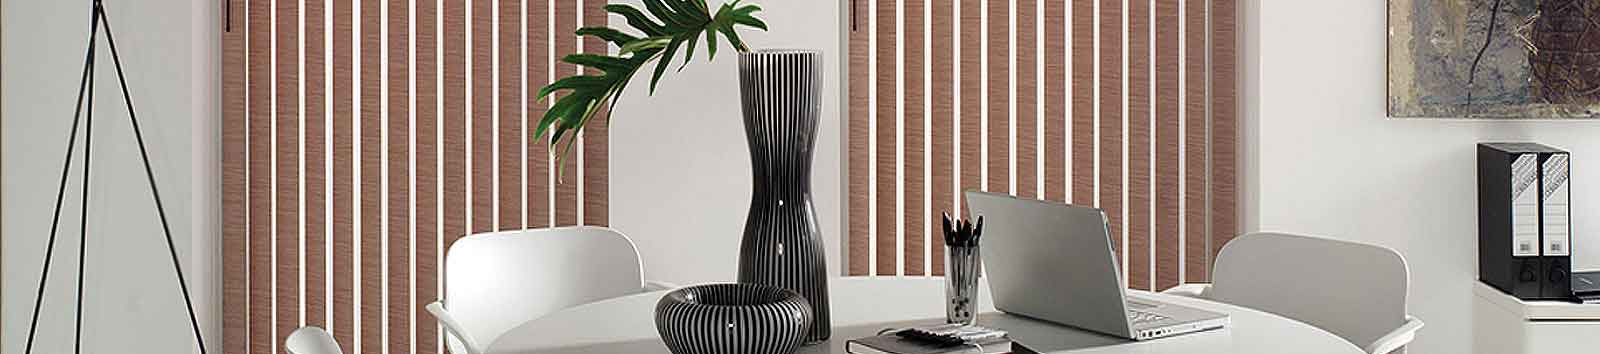 Vertical blinds Sydney